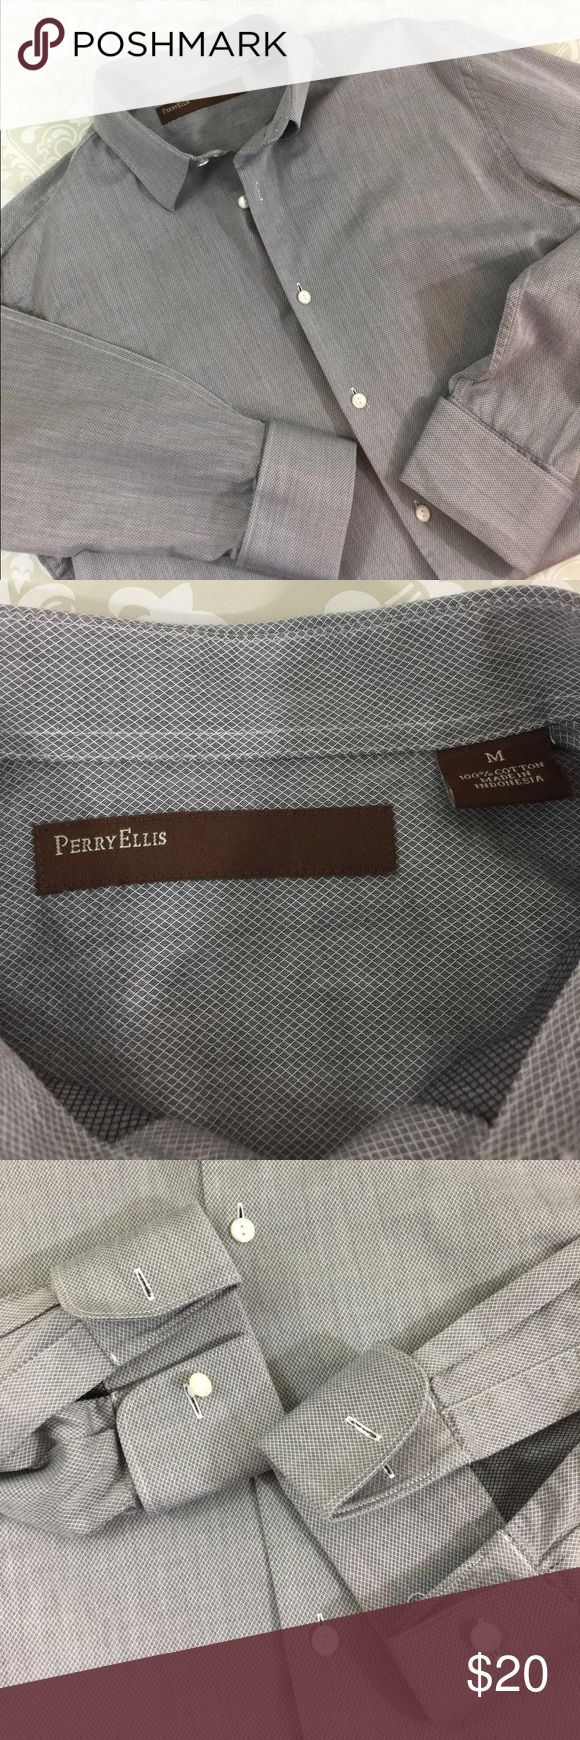 Perry Ellis French Cuff Shirt Size M Excellent condition Perry Ellis Shirt with French Cuffs.  Tiny gray and white pattern.  100% cotton.  See pictures for measurements.  Bundle your likes for a private offer.  Thank you for shopping my closet!  👔 Perry Ellis Shirts Dress Shirts